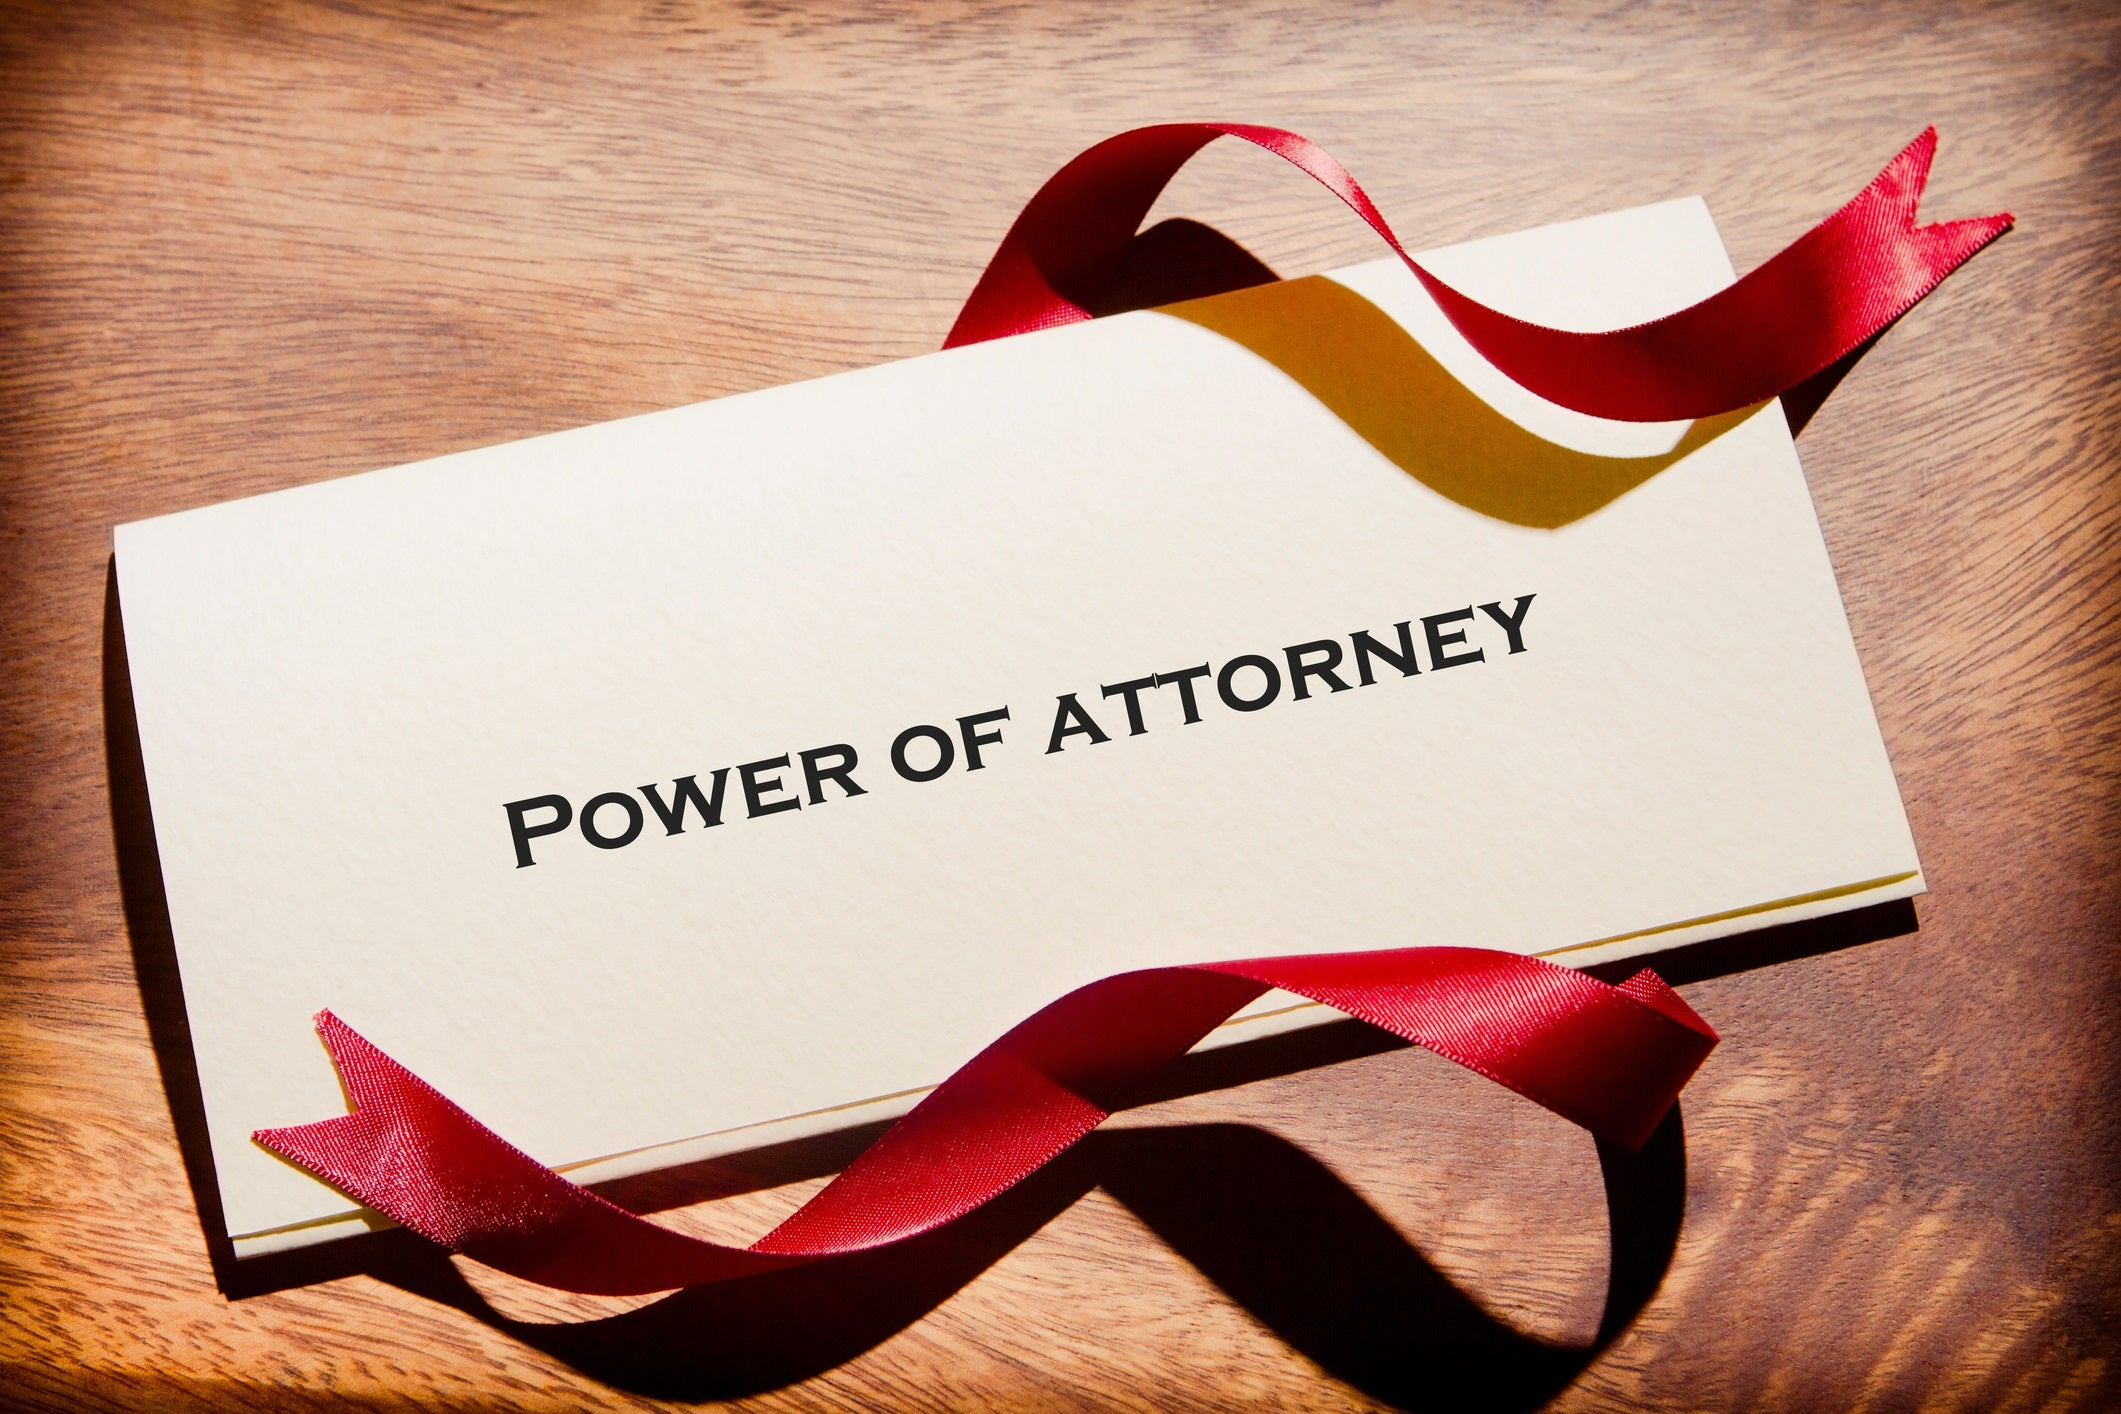 Victoria's Powers of Attorney Act 2014